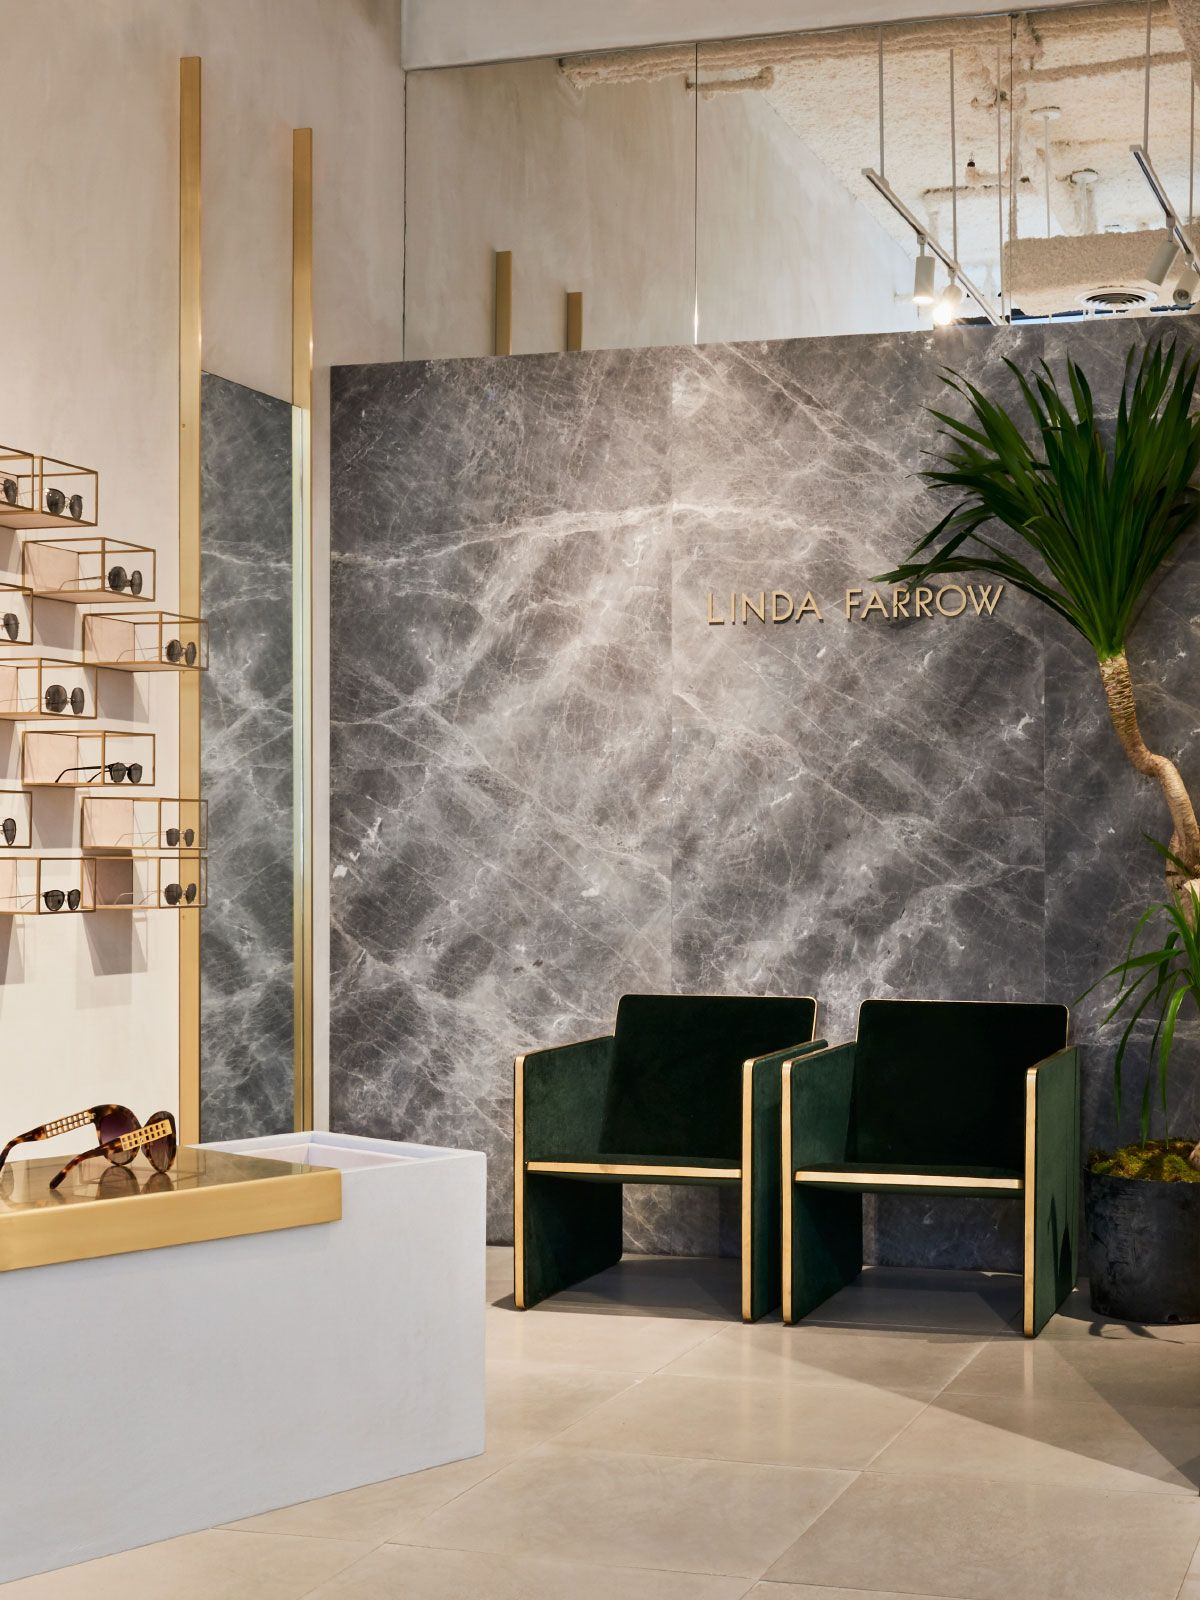 Studio giancarlo valle designs linda farrow 39 s first us for Furniture stores in soho new york city